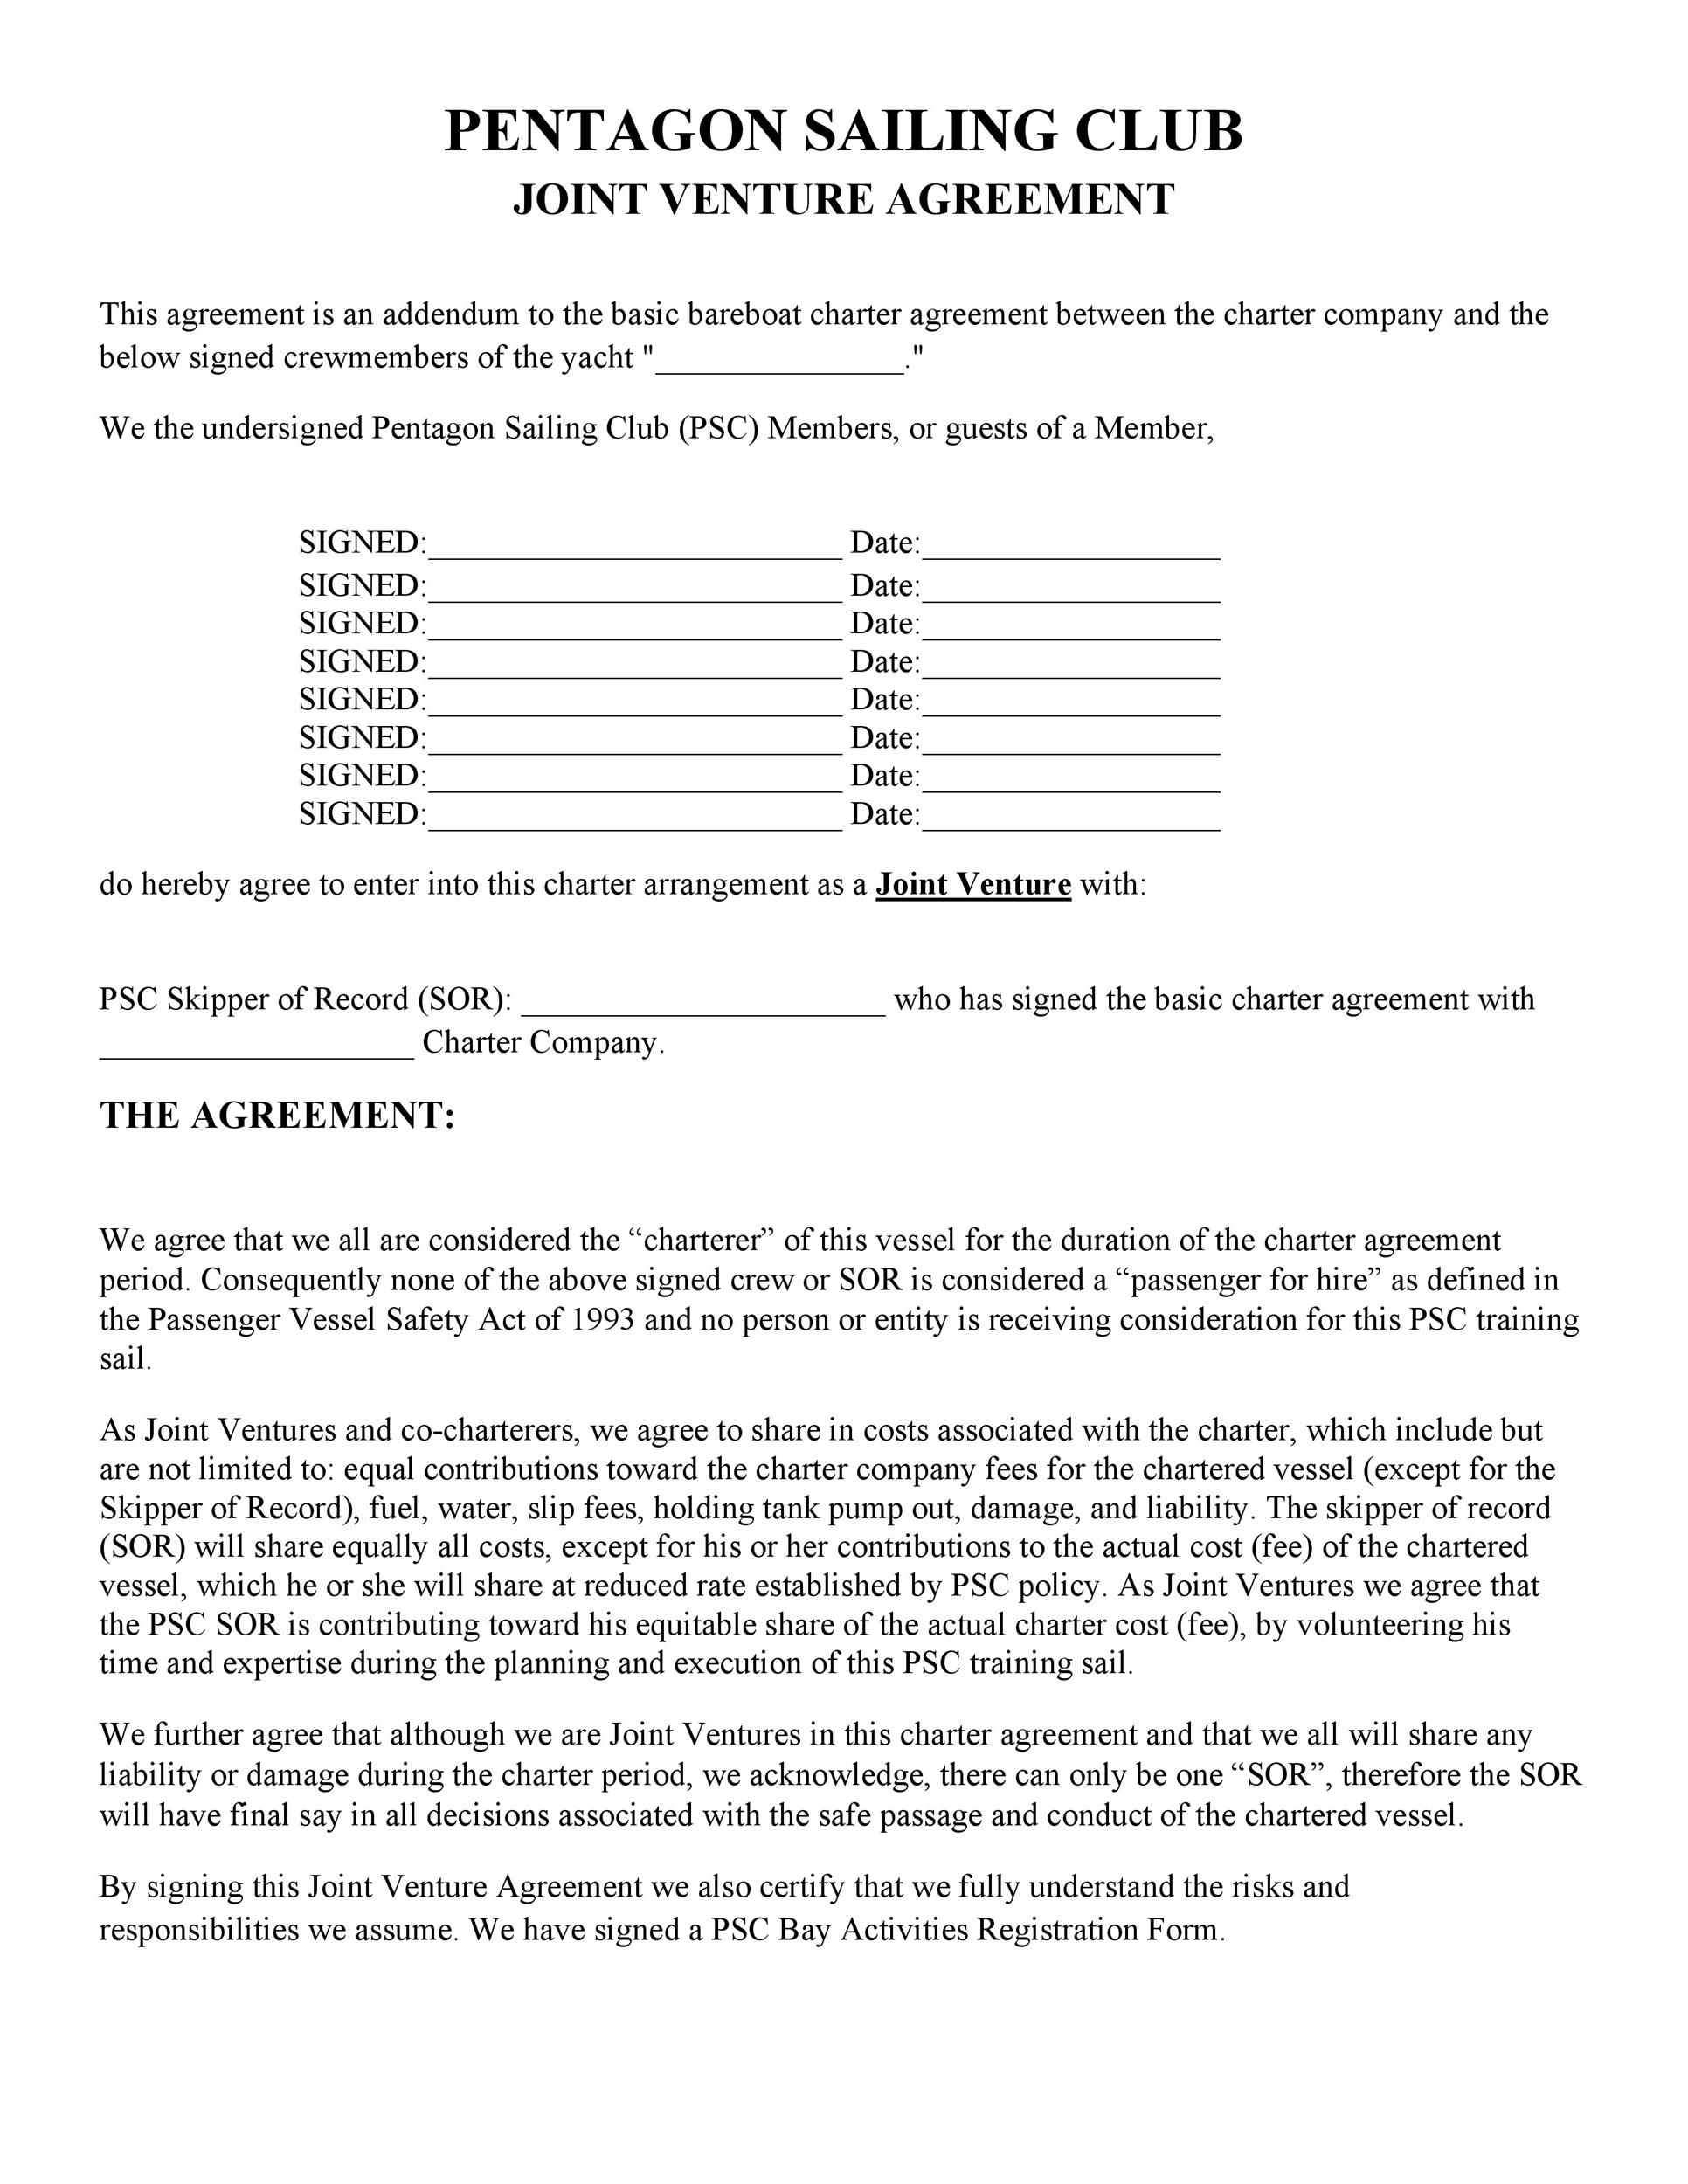 Free Joint Venture Agreement Template 28